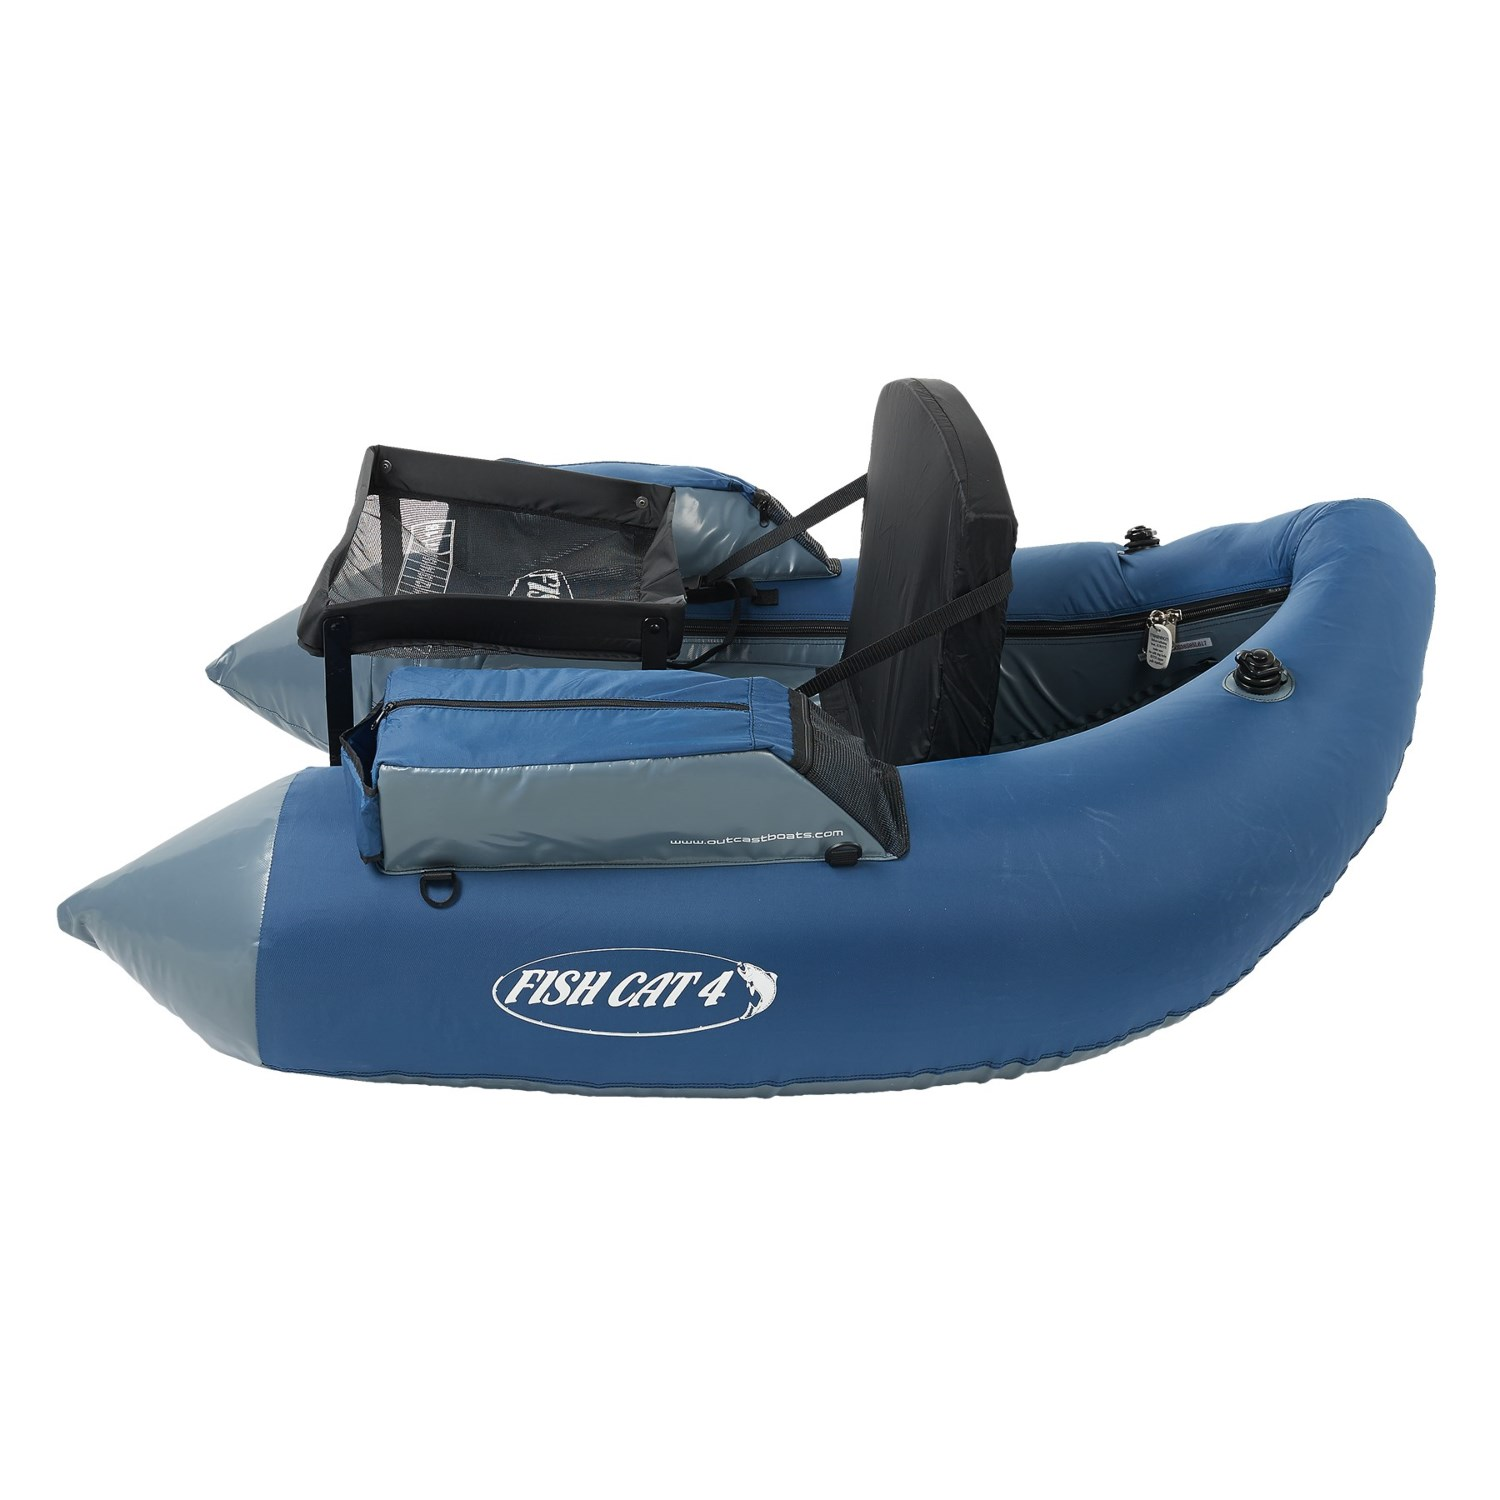 Outcast boats fish cat 4 lcs float tube save 34 for Fish cat 4